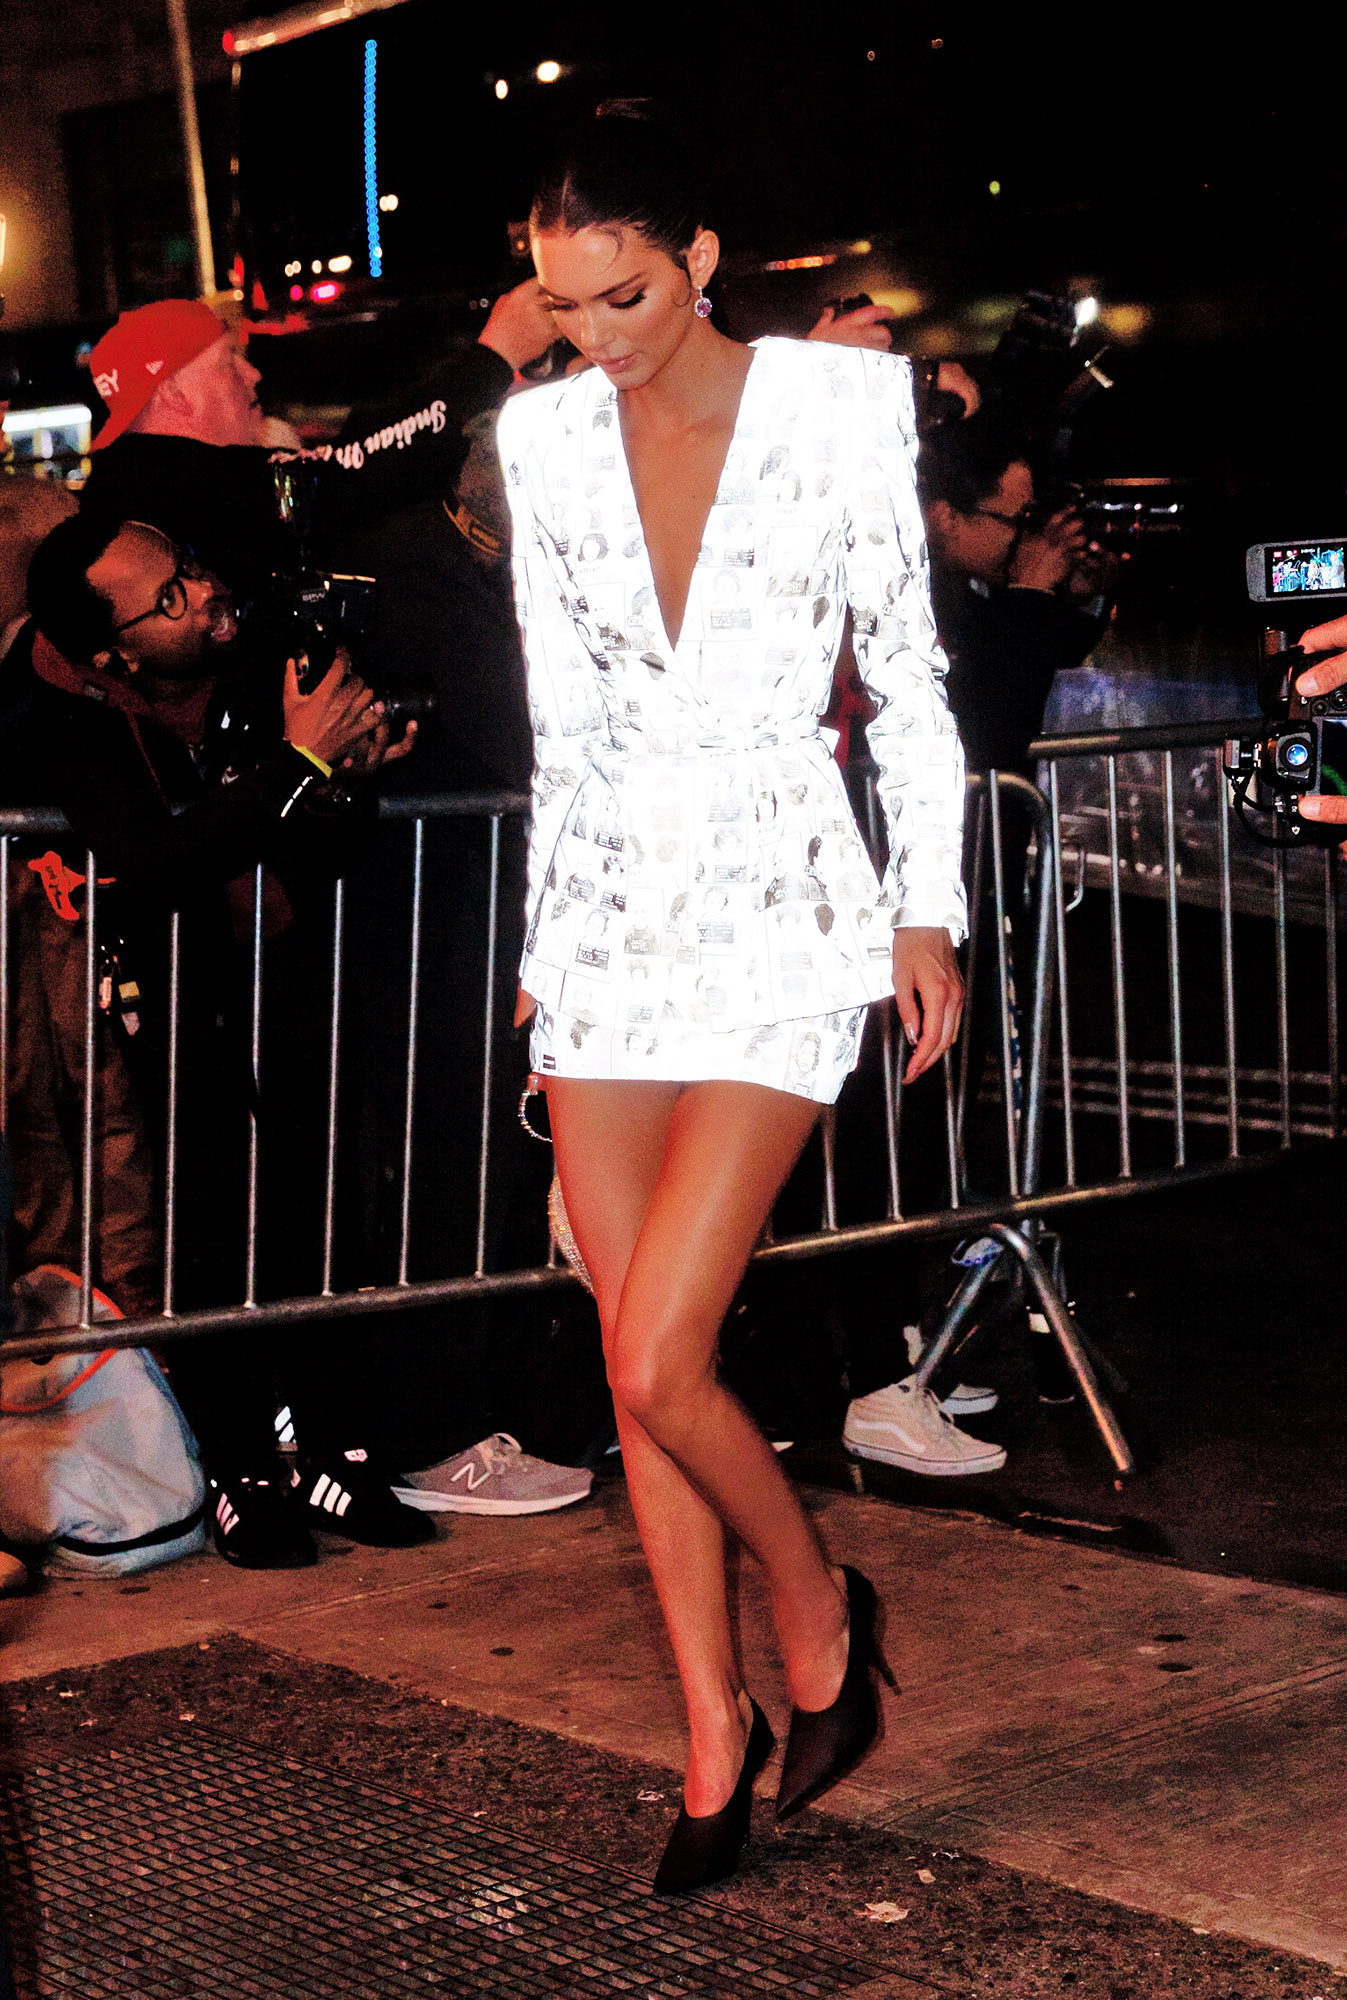 Kendall Jenner after party met gala 2019 - The model showed off her long limbs in a white miniskirt and jacket duo sans shirt underneath.